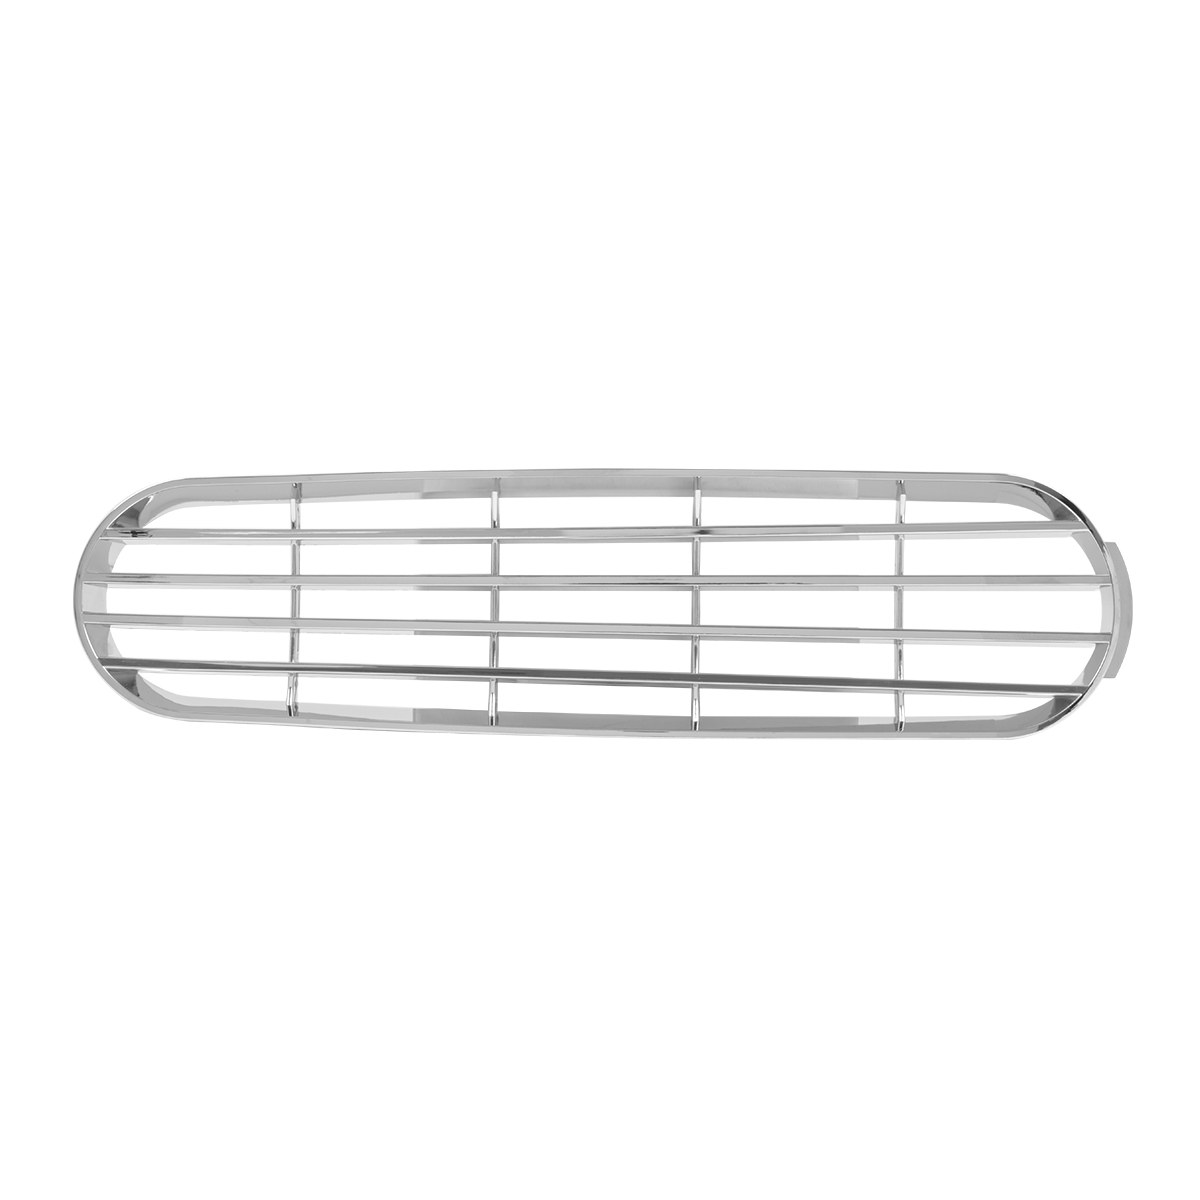 89336 Hood Side Air Vent for Mack Vision